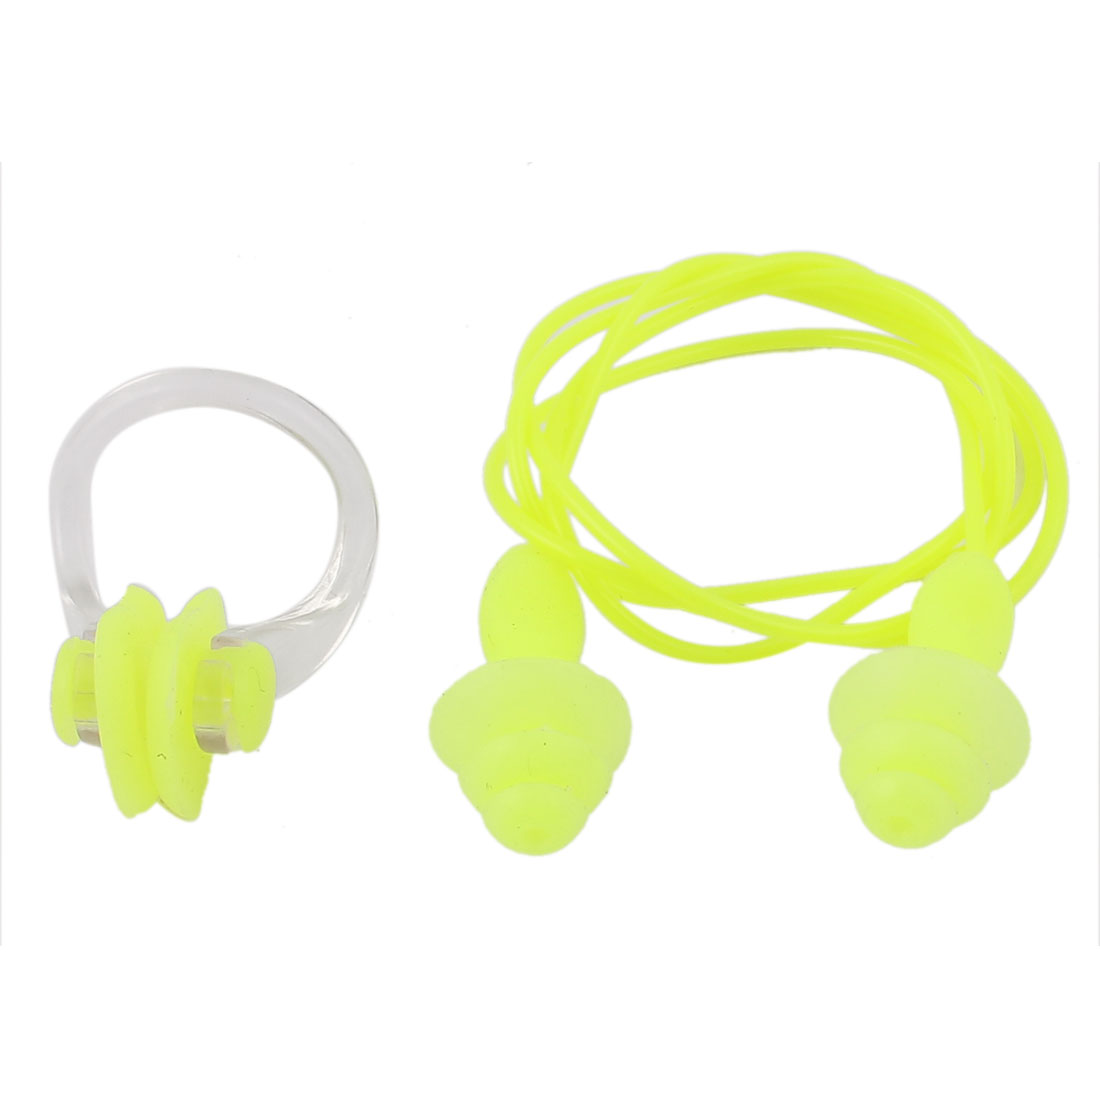 Water Sports Swimming Silicone Earplugs Plastic Nose Clip Yellow Clear Set 2 in 1